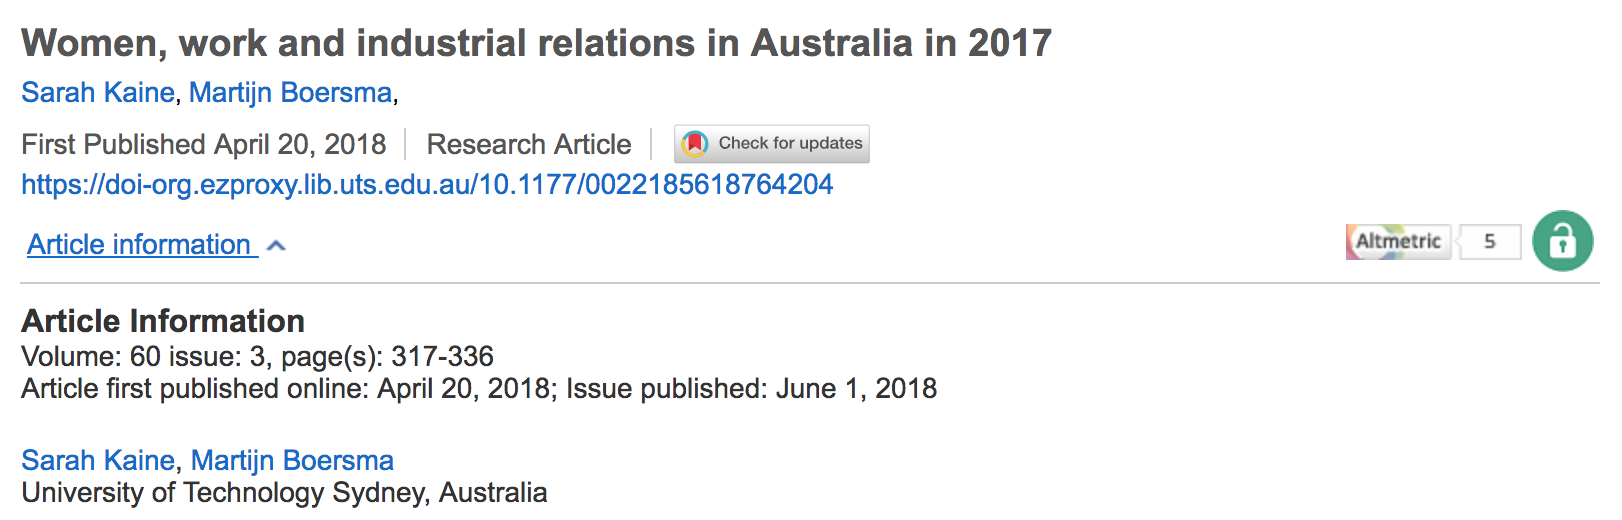 Gender at Work and in Industrial Relations: Australia in 2017